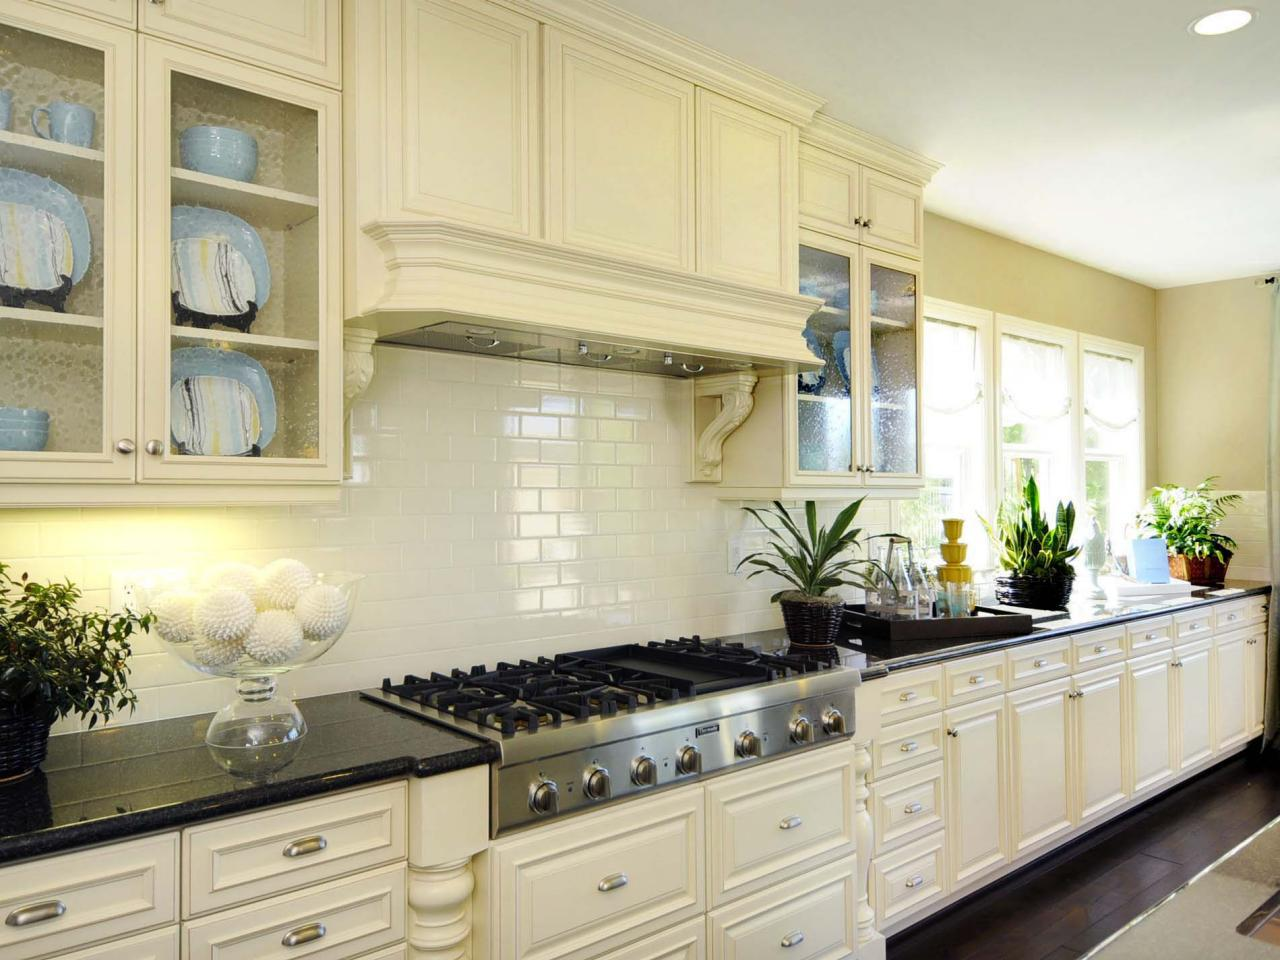 Image of: sticky back splash back